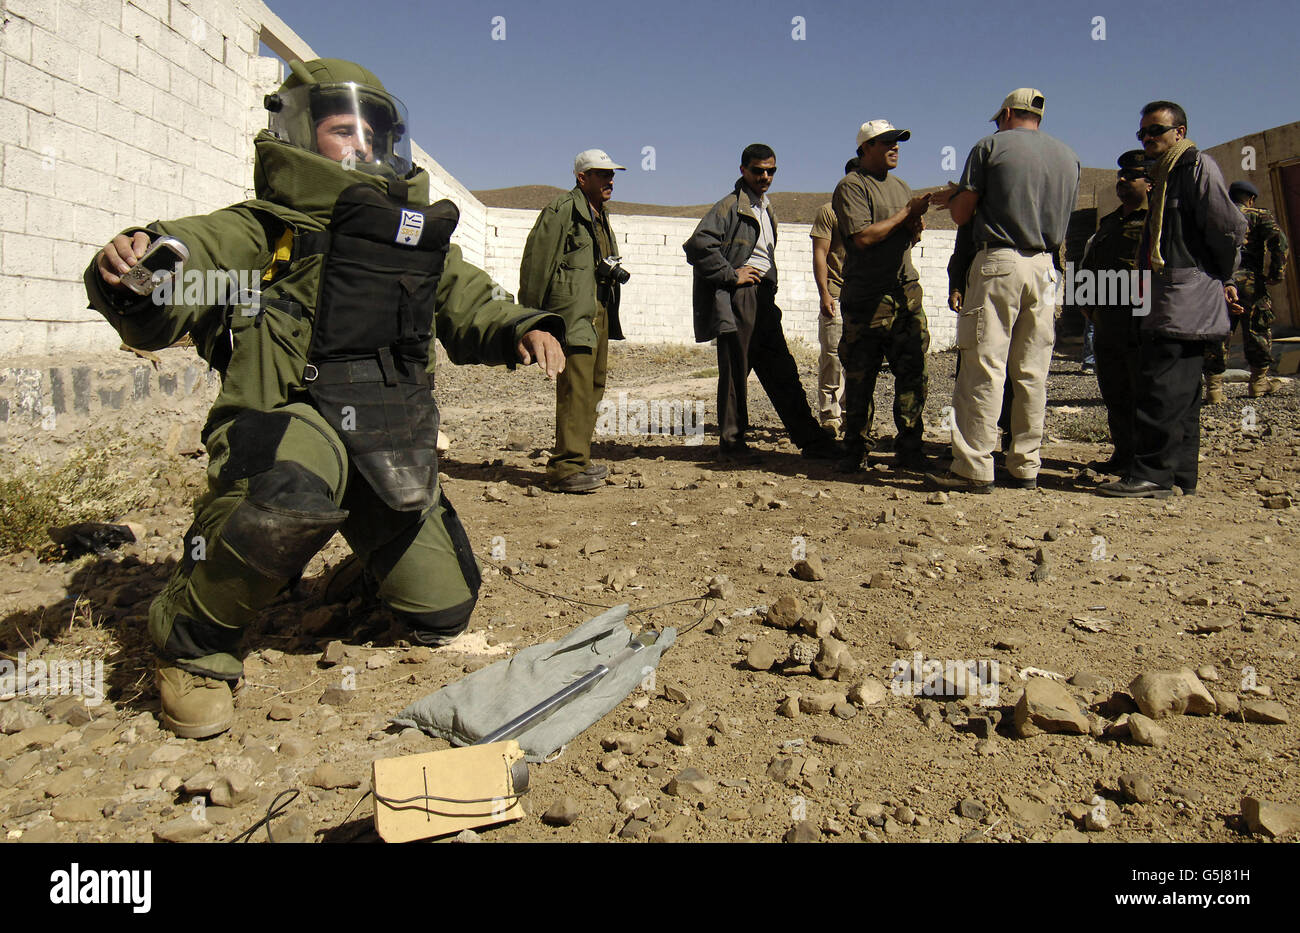 Yemen explosive ordnance disposal team members watch a Petty Officer, dressed in a bomb suit, destroy an explosive - Stock Image